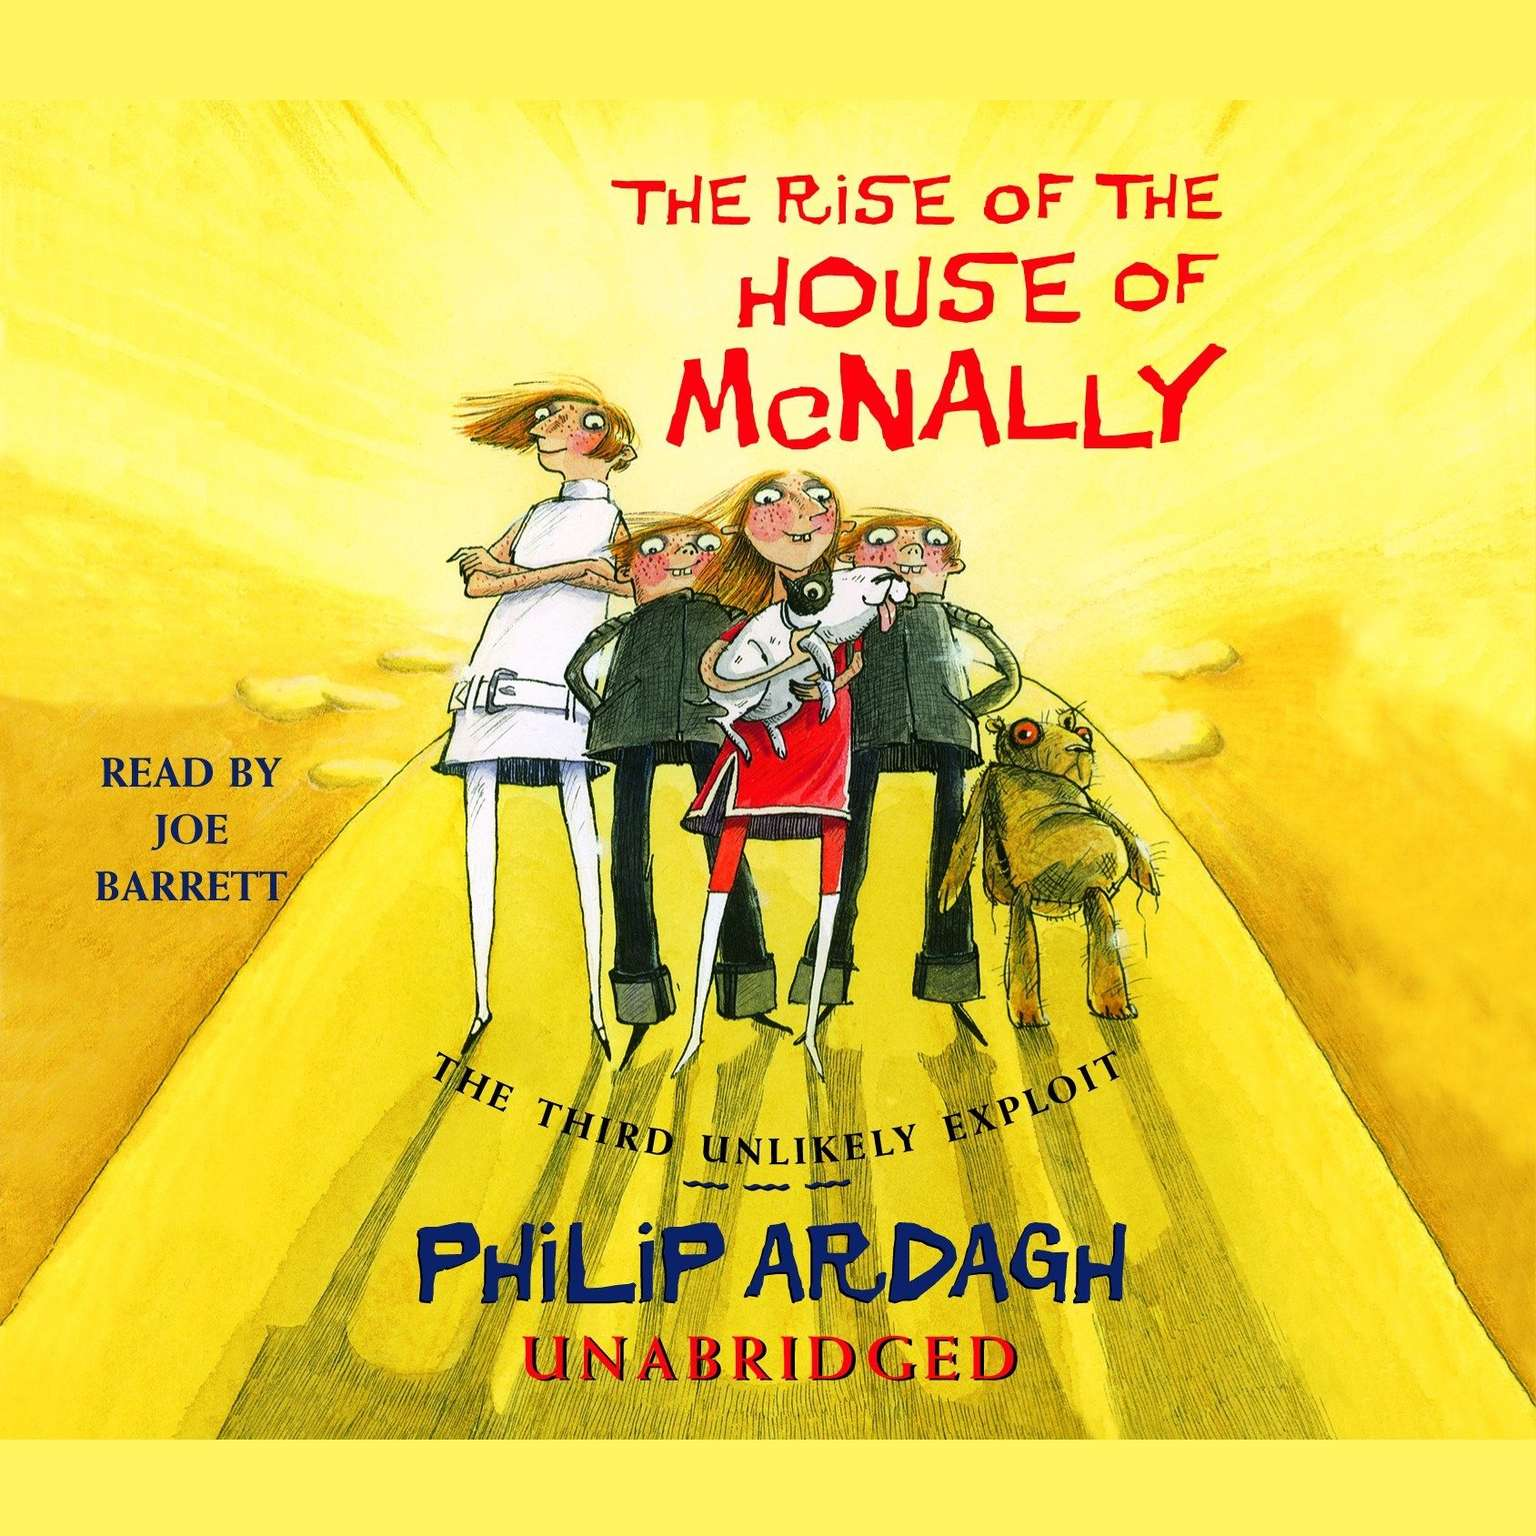 Printable The Rise of the House of McNally: The Third Unlikely Exploit Audiobook Cover Art